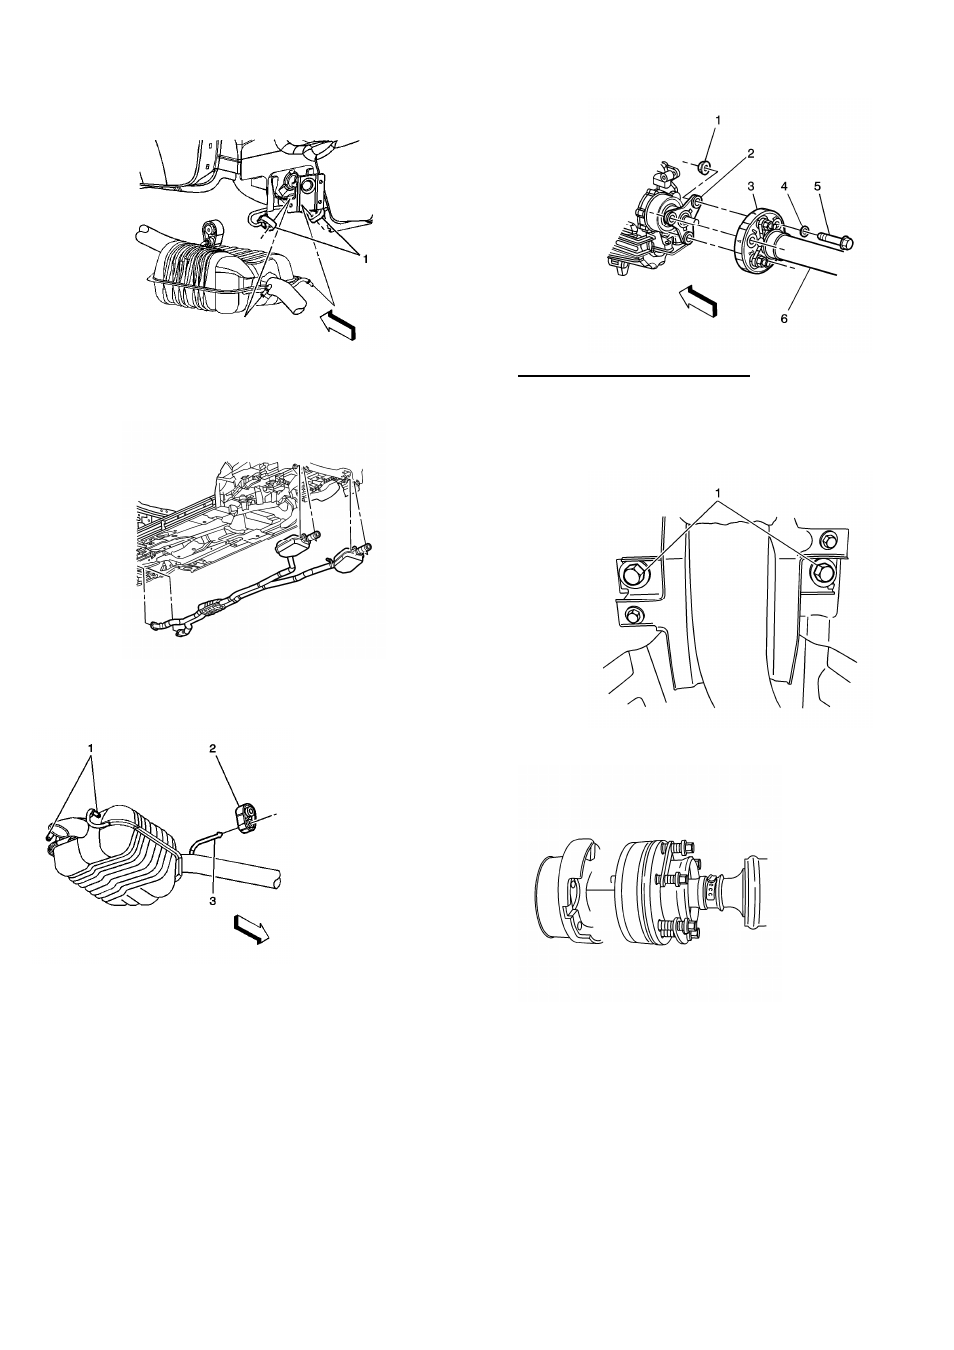 Lingenfelter Katech Cadillac Cts V Stainless Steel Short Throw Cv Joint Diagram Shifter User Manual Page 2 10